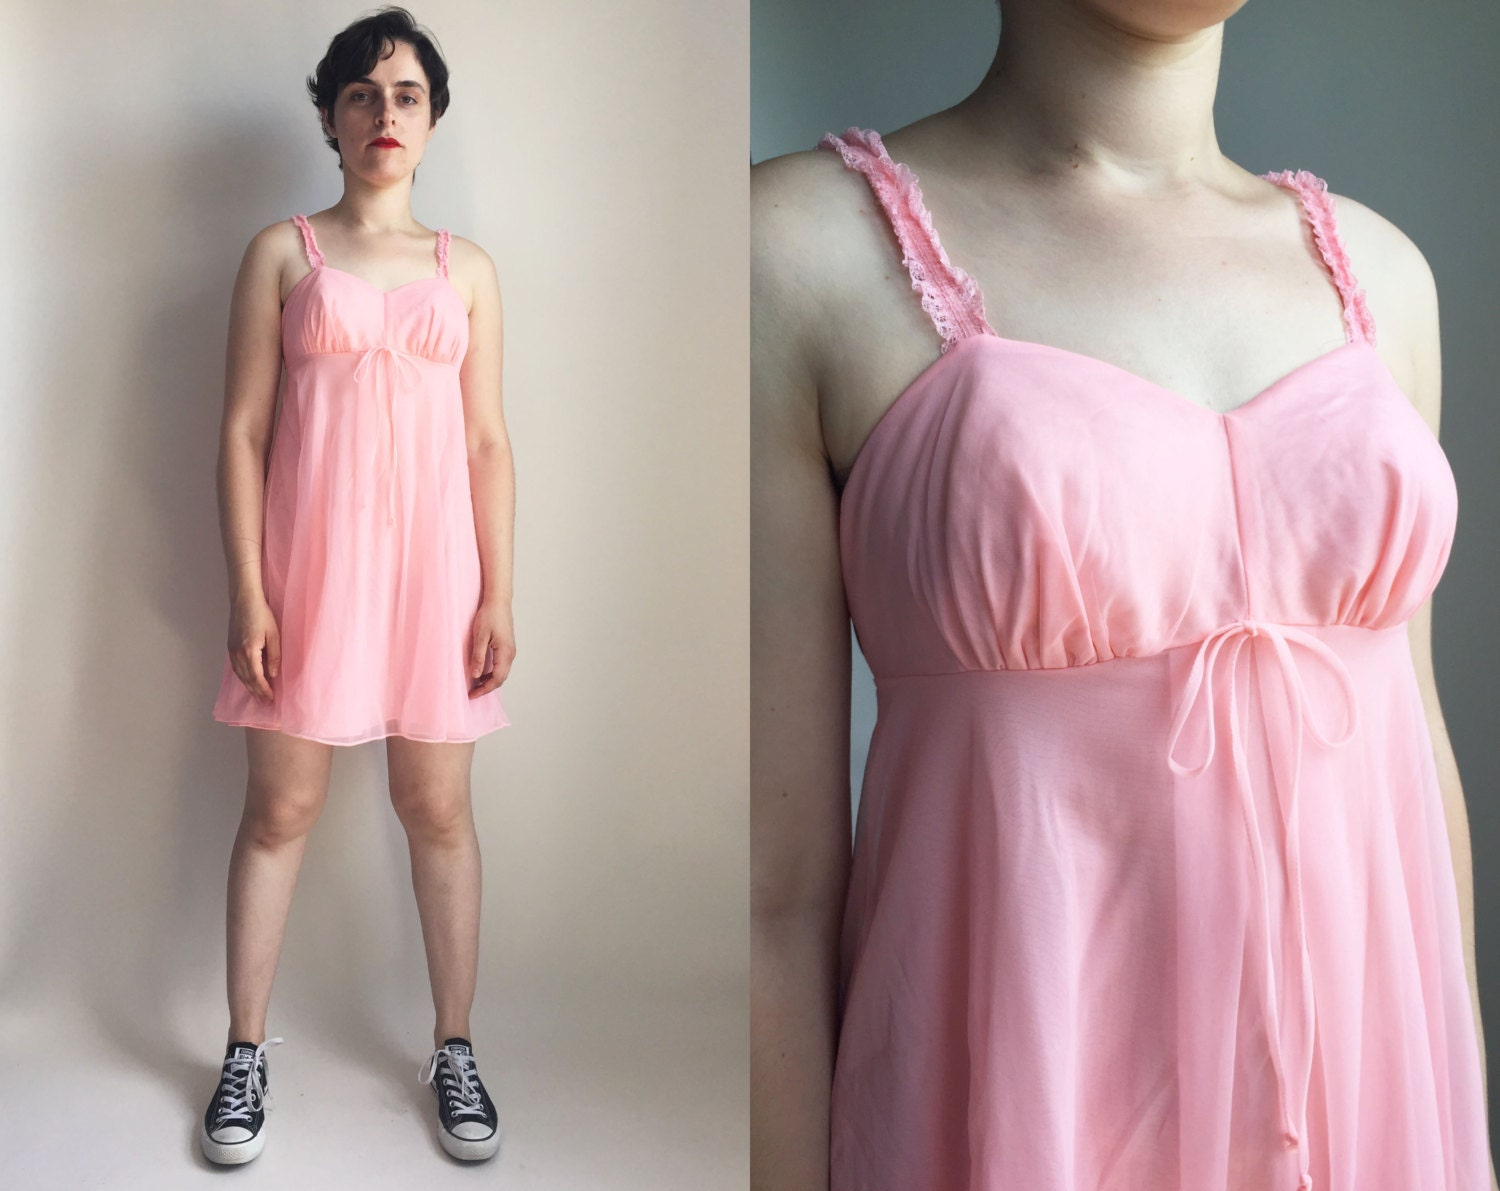 60s clothes 60s pink nightie vintage lingerie by trashedbytime